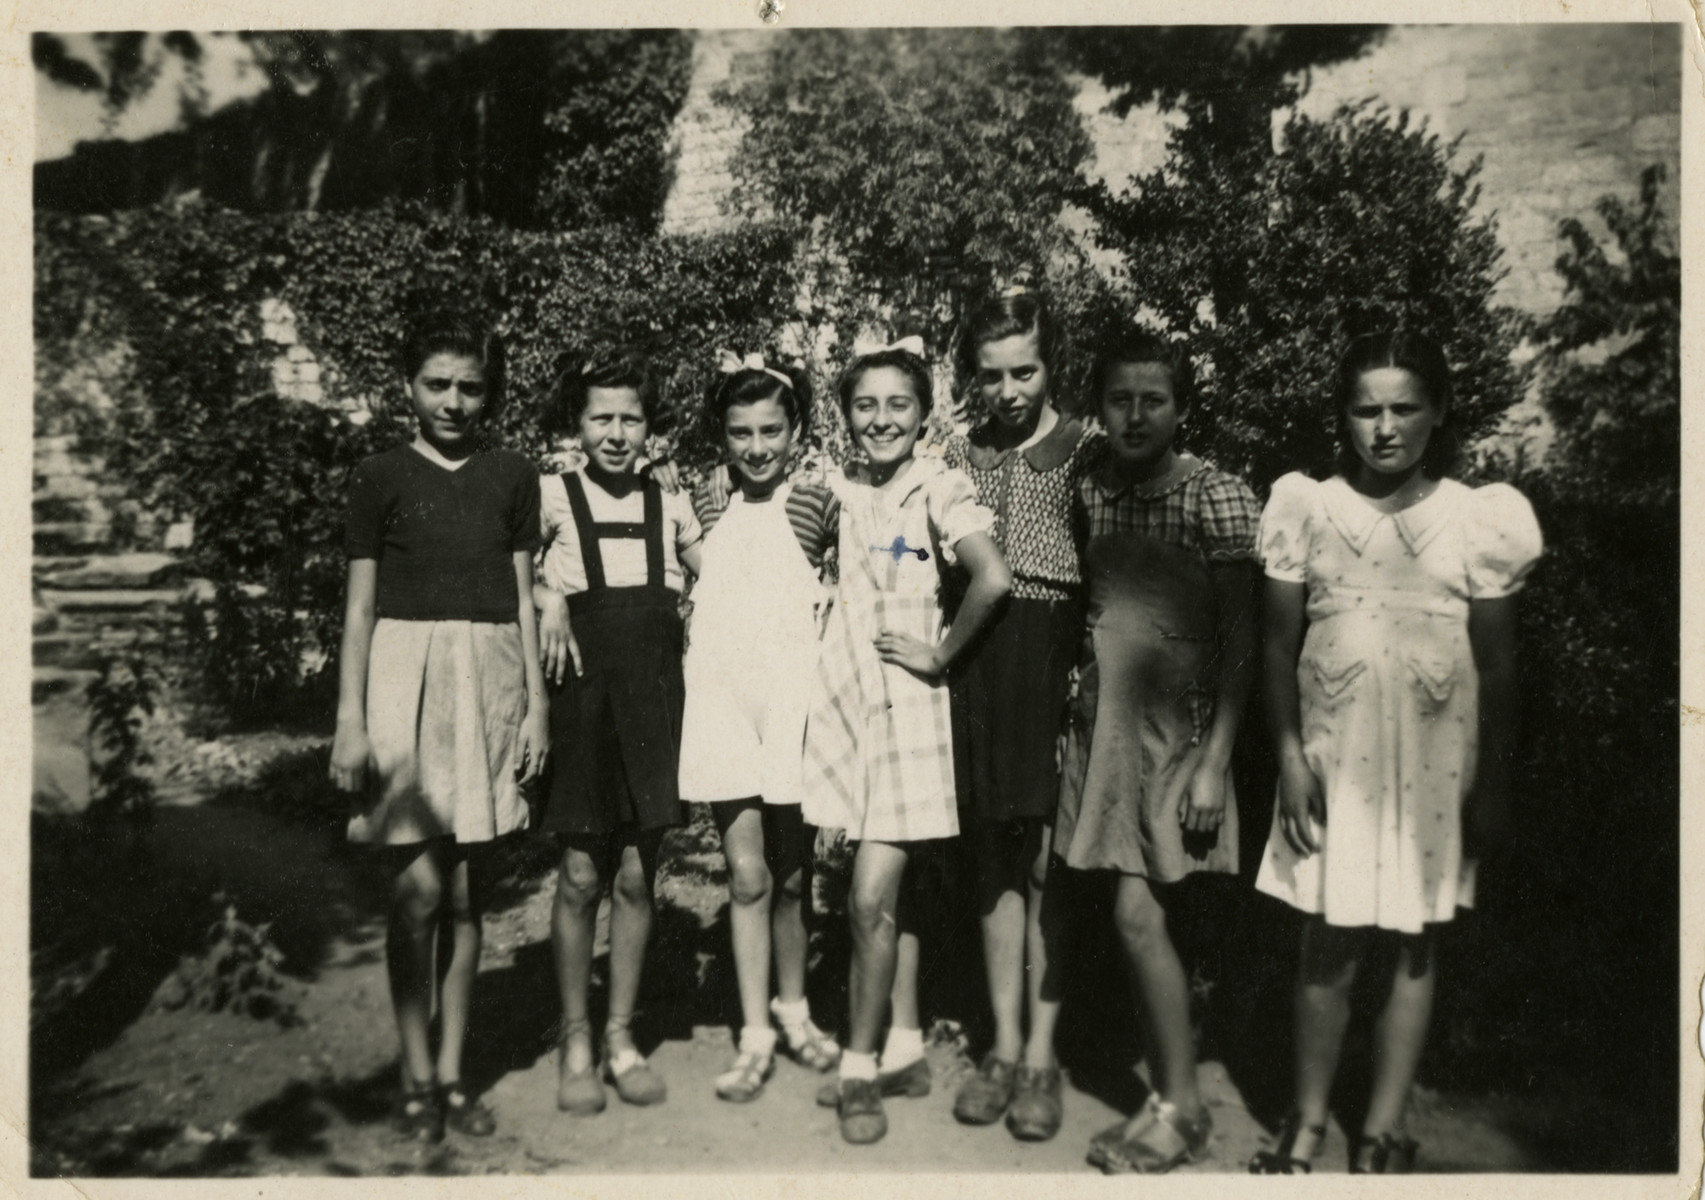 Group portrait of Jewish and Spanish girls in the Villla Saint Christophe in Canet-Plage.